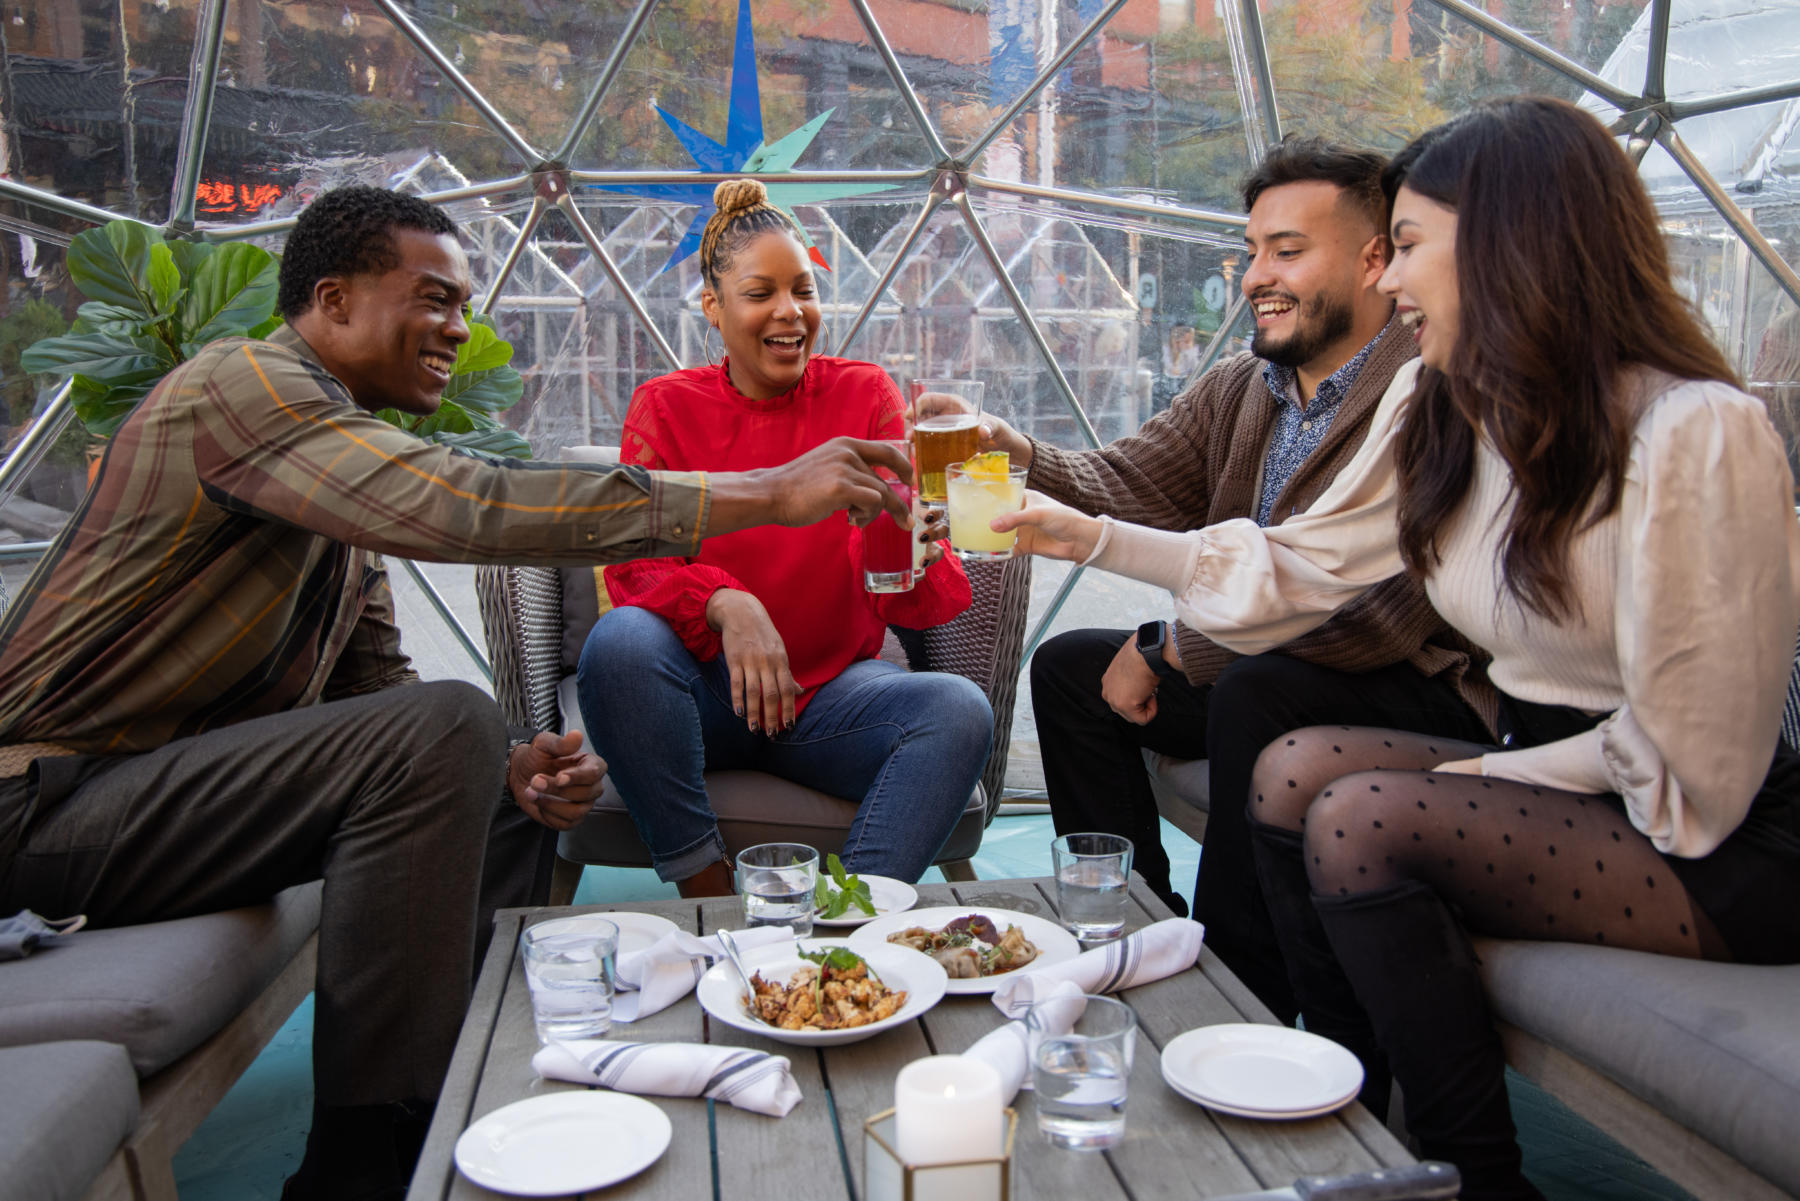 New Year's Eve dinner in Chicago: outdoor dining, takeout, and delivery options